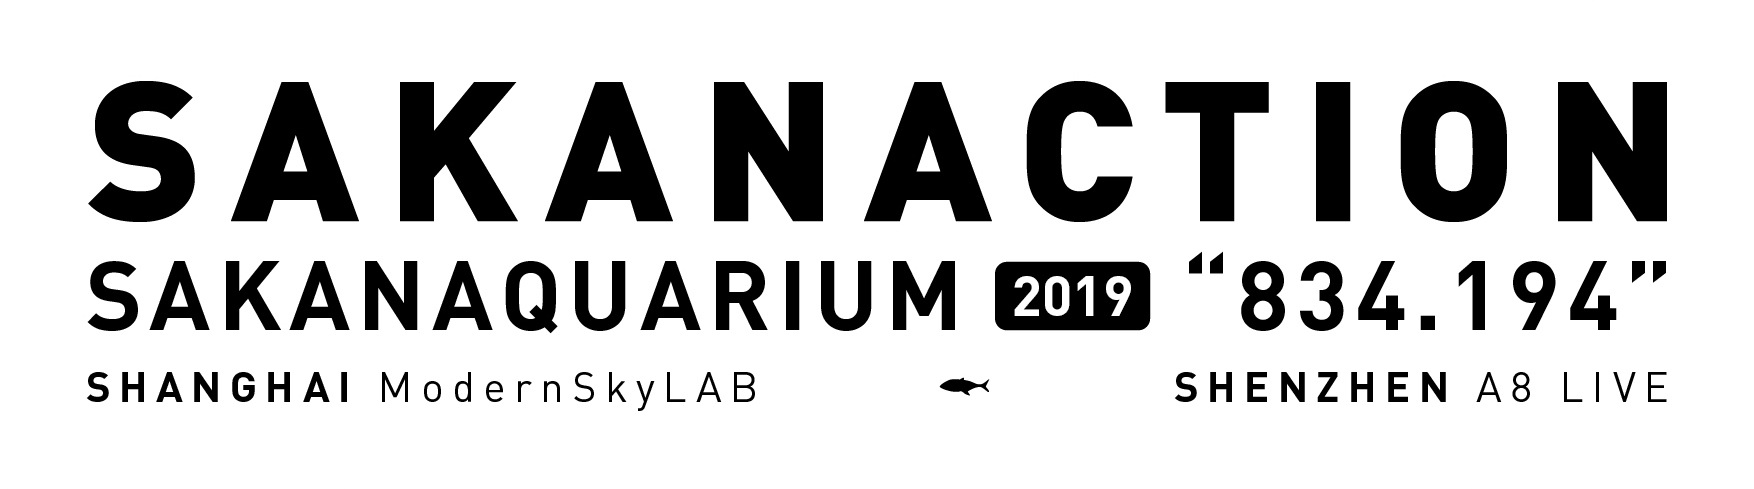 "SAKANAQUARIUM 2019 ""834.194"" in China"